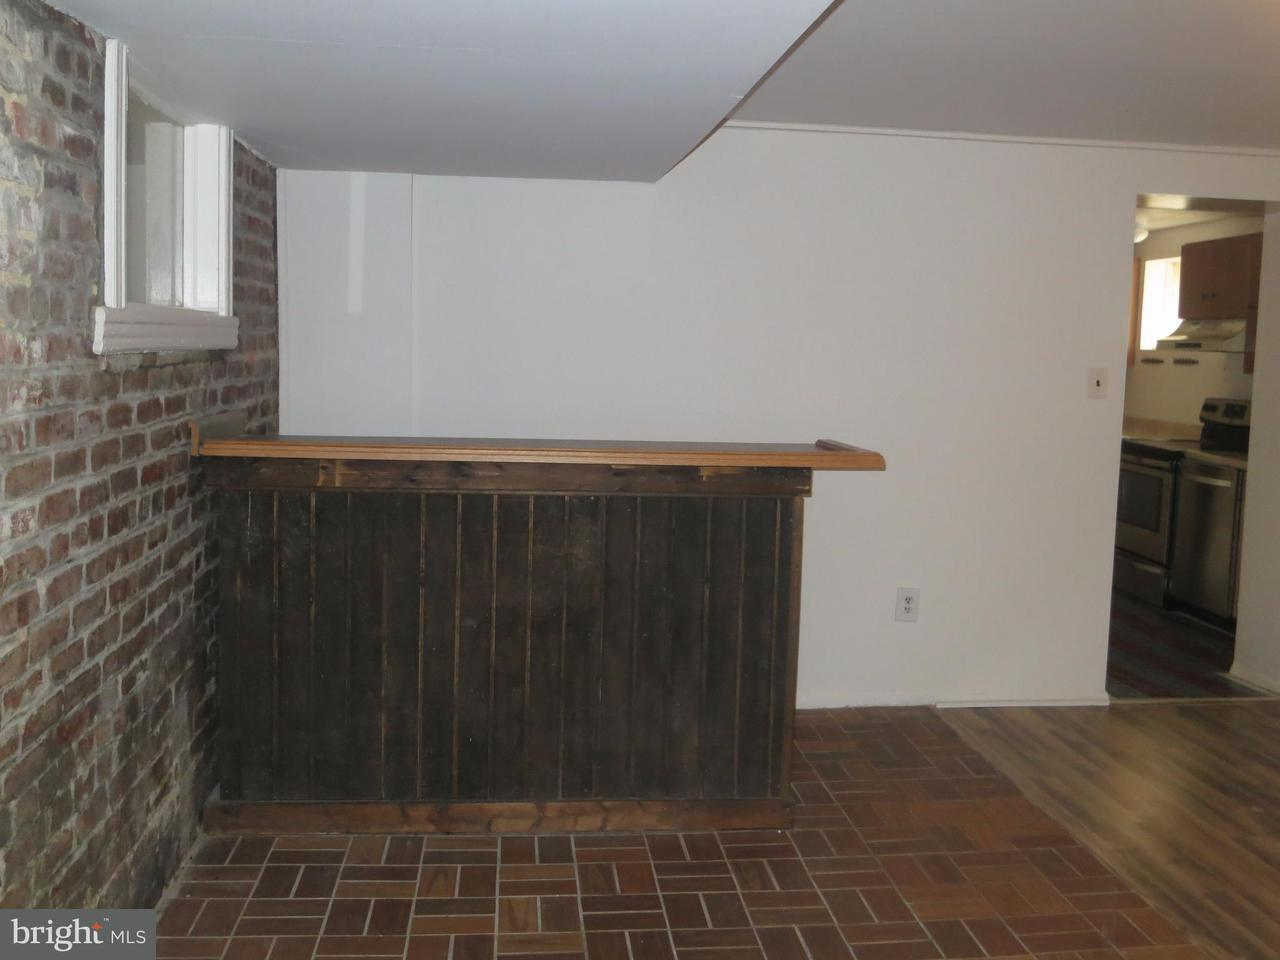 Additional photo for property listing at 323 11th St NE #b  Washington, District Of Columbia 20002 United States